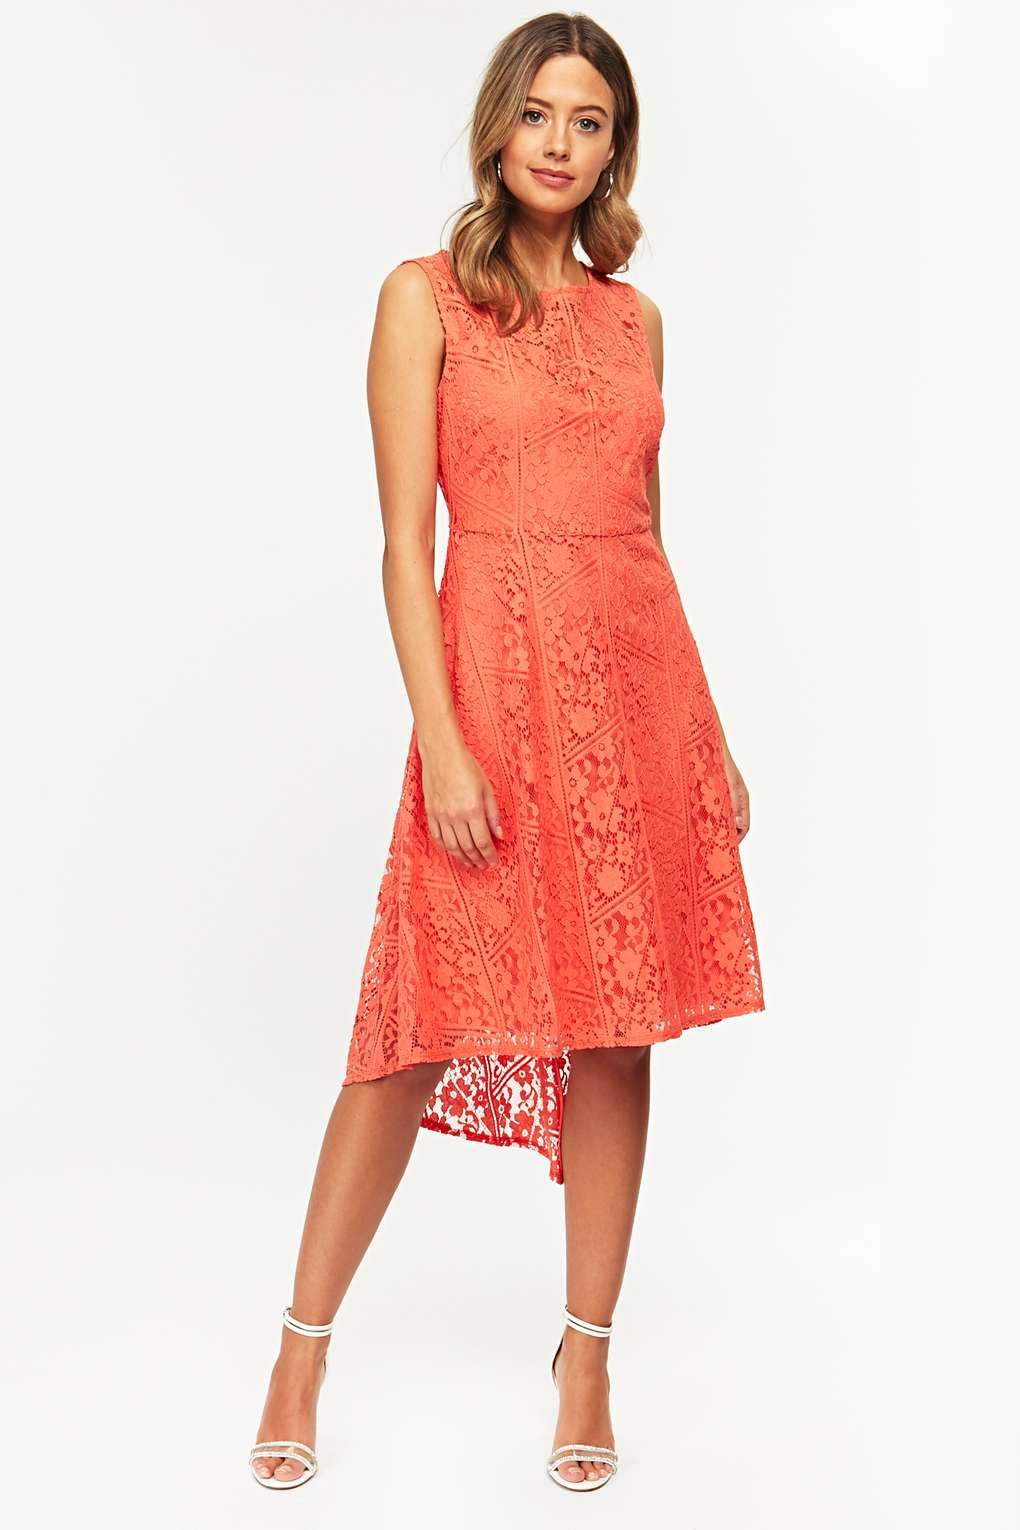 Carousel Image 18   Petite outfits, Clothes for women, Fit and ...